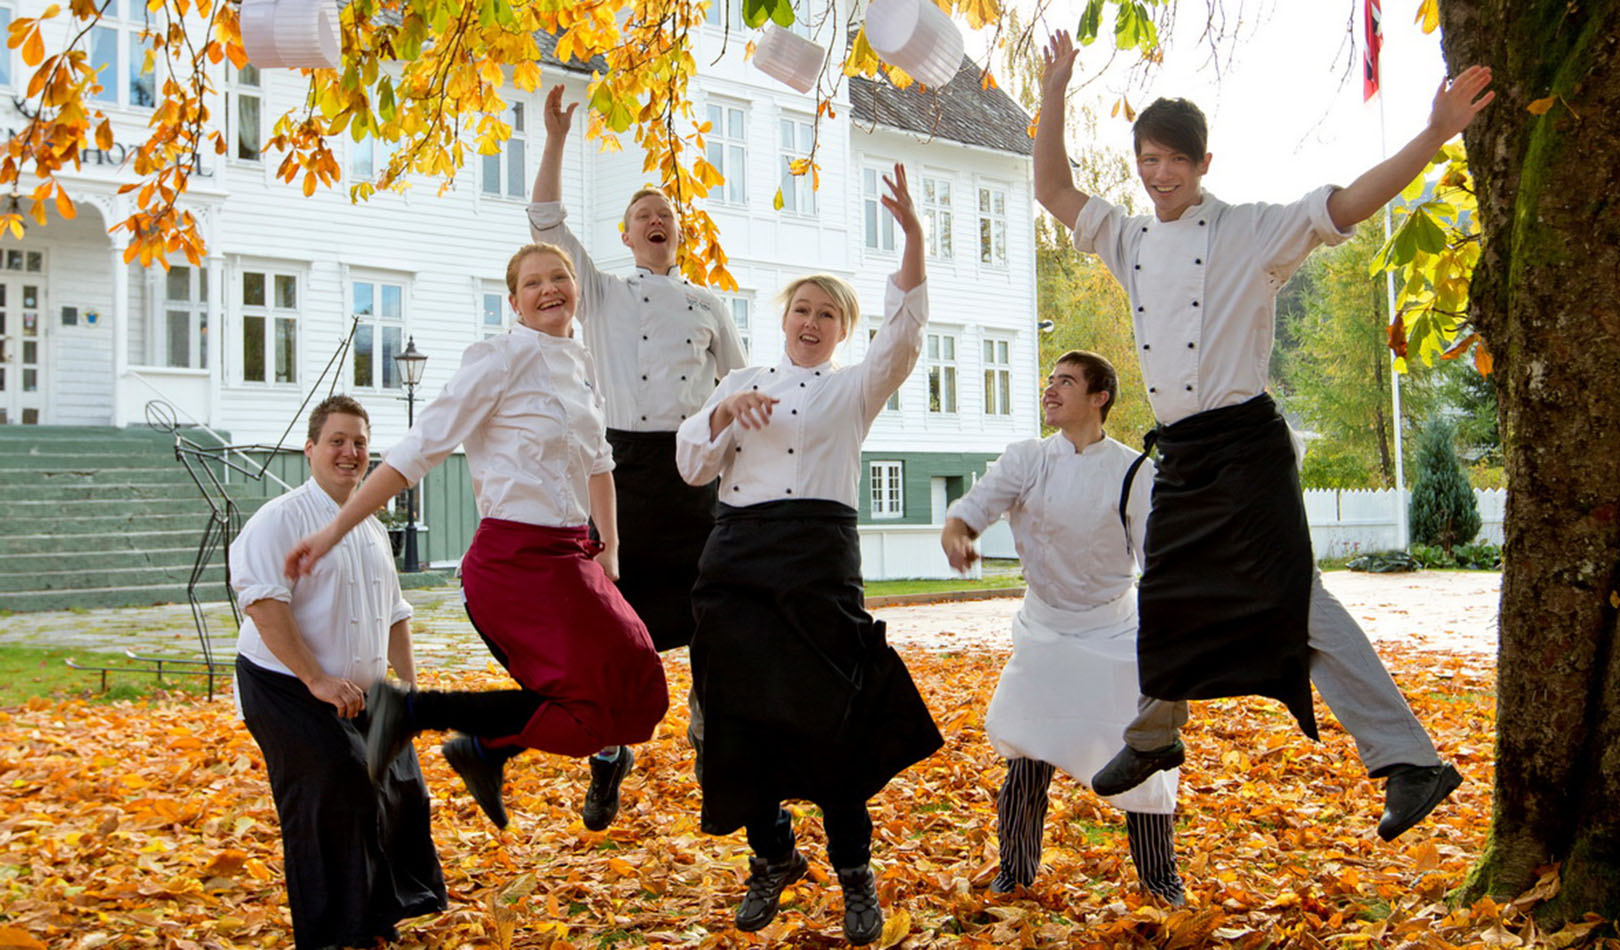 Jumping chefs outside Gloppen Hotel surrounded by autumn leaves.